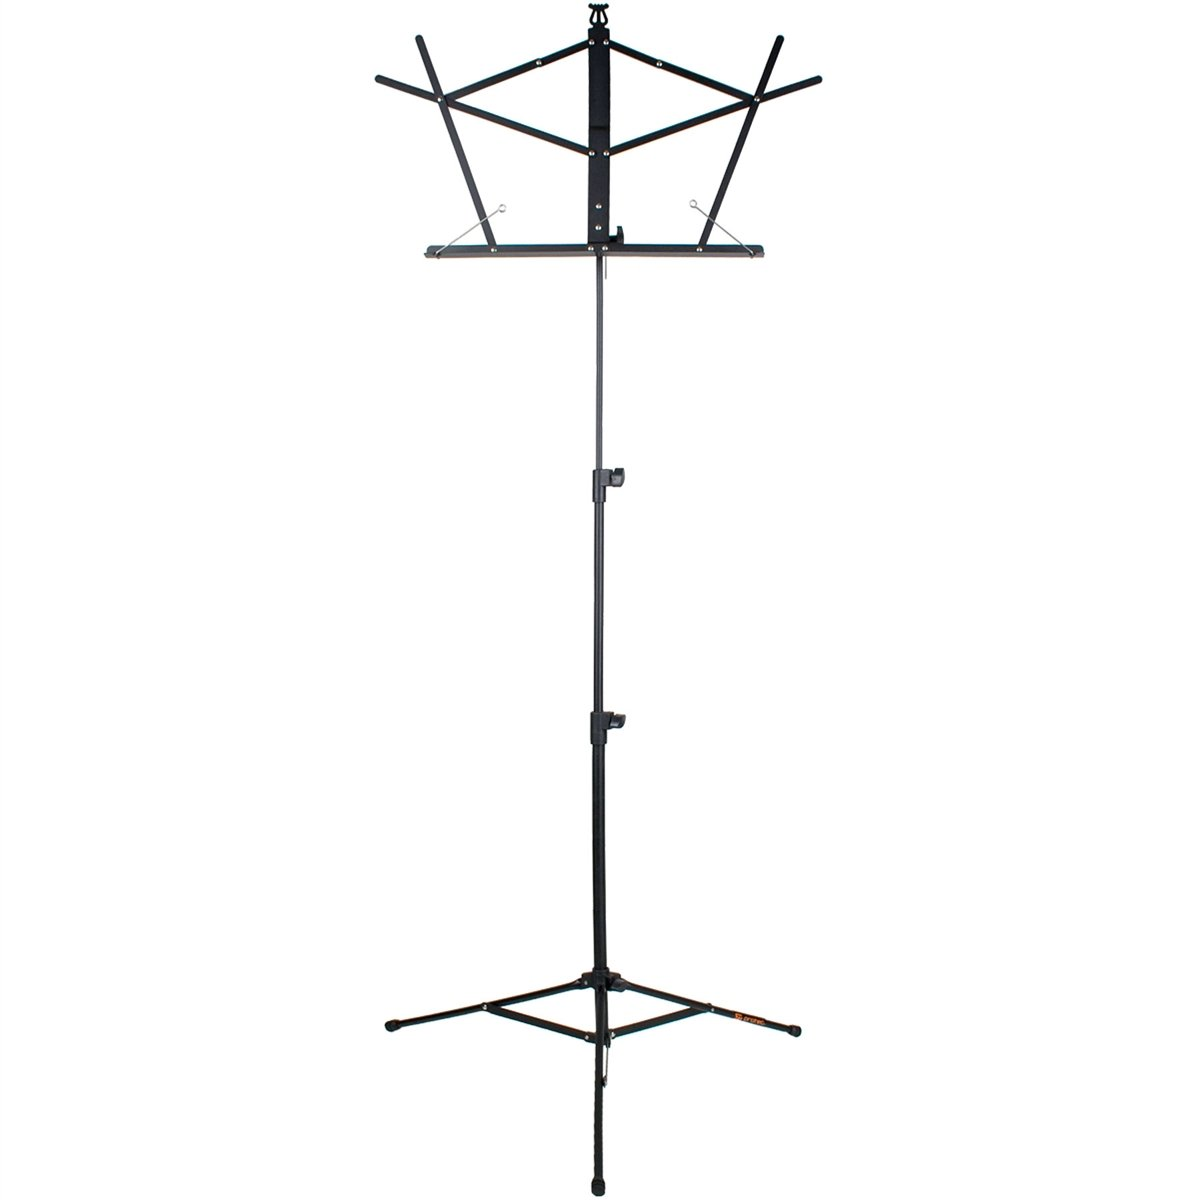 Protec - Steel Value Music Stand with Standard Desk and Carry Bag-Accessories-Protec-Black-Music Elements